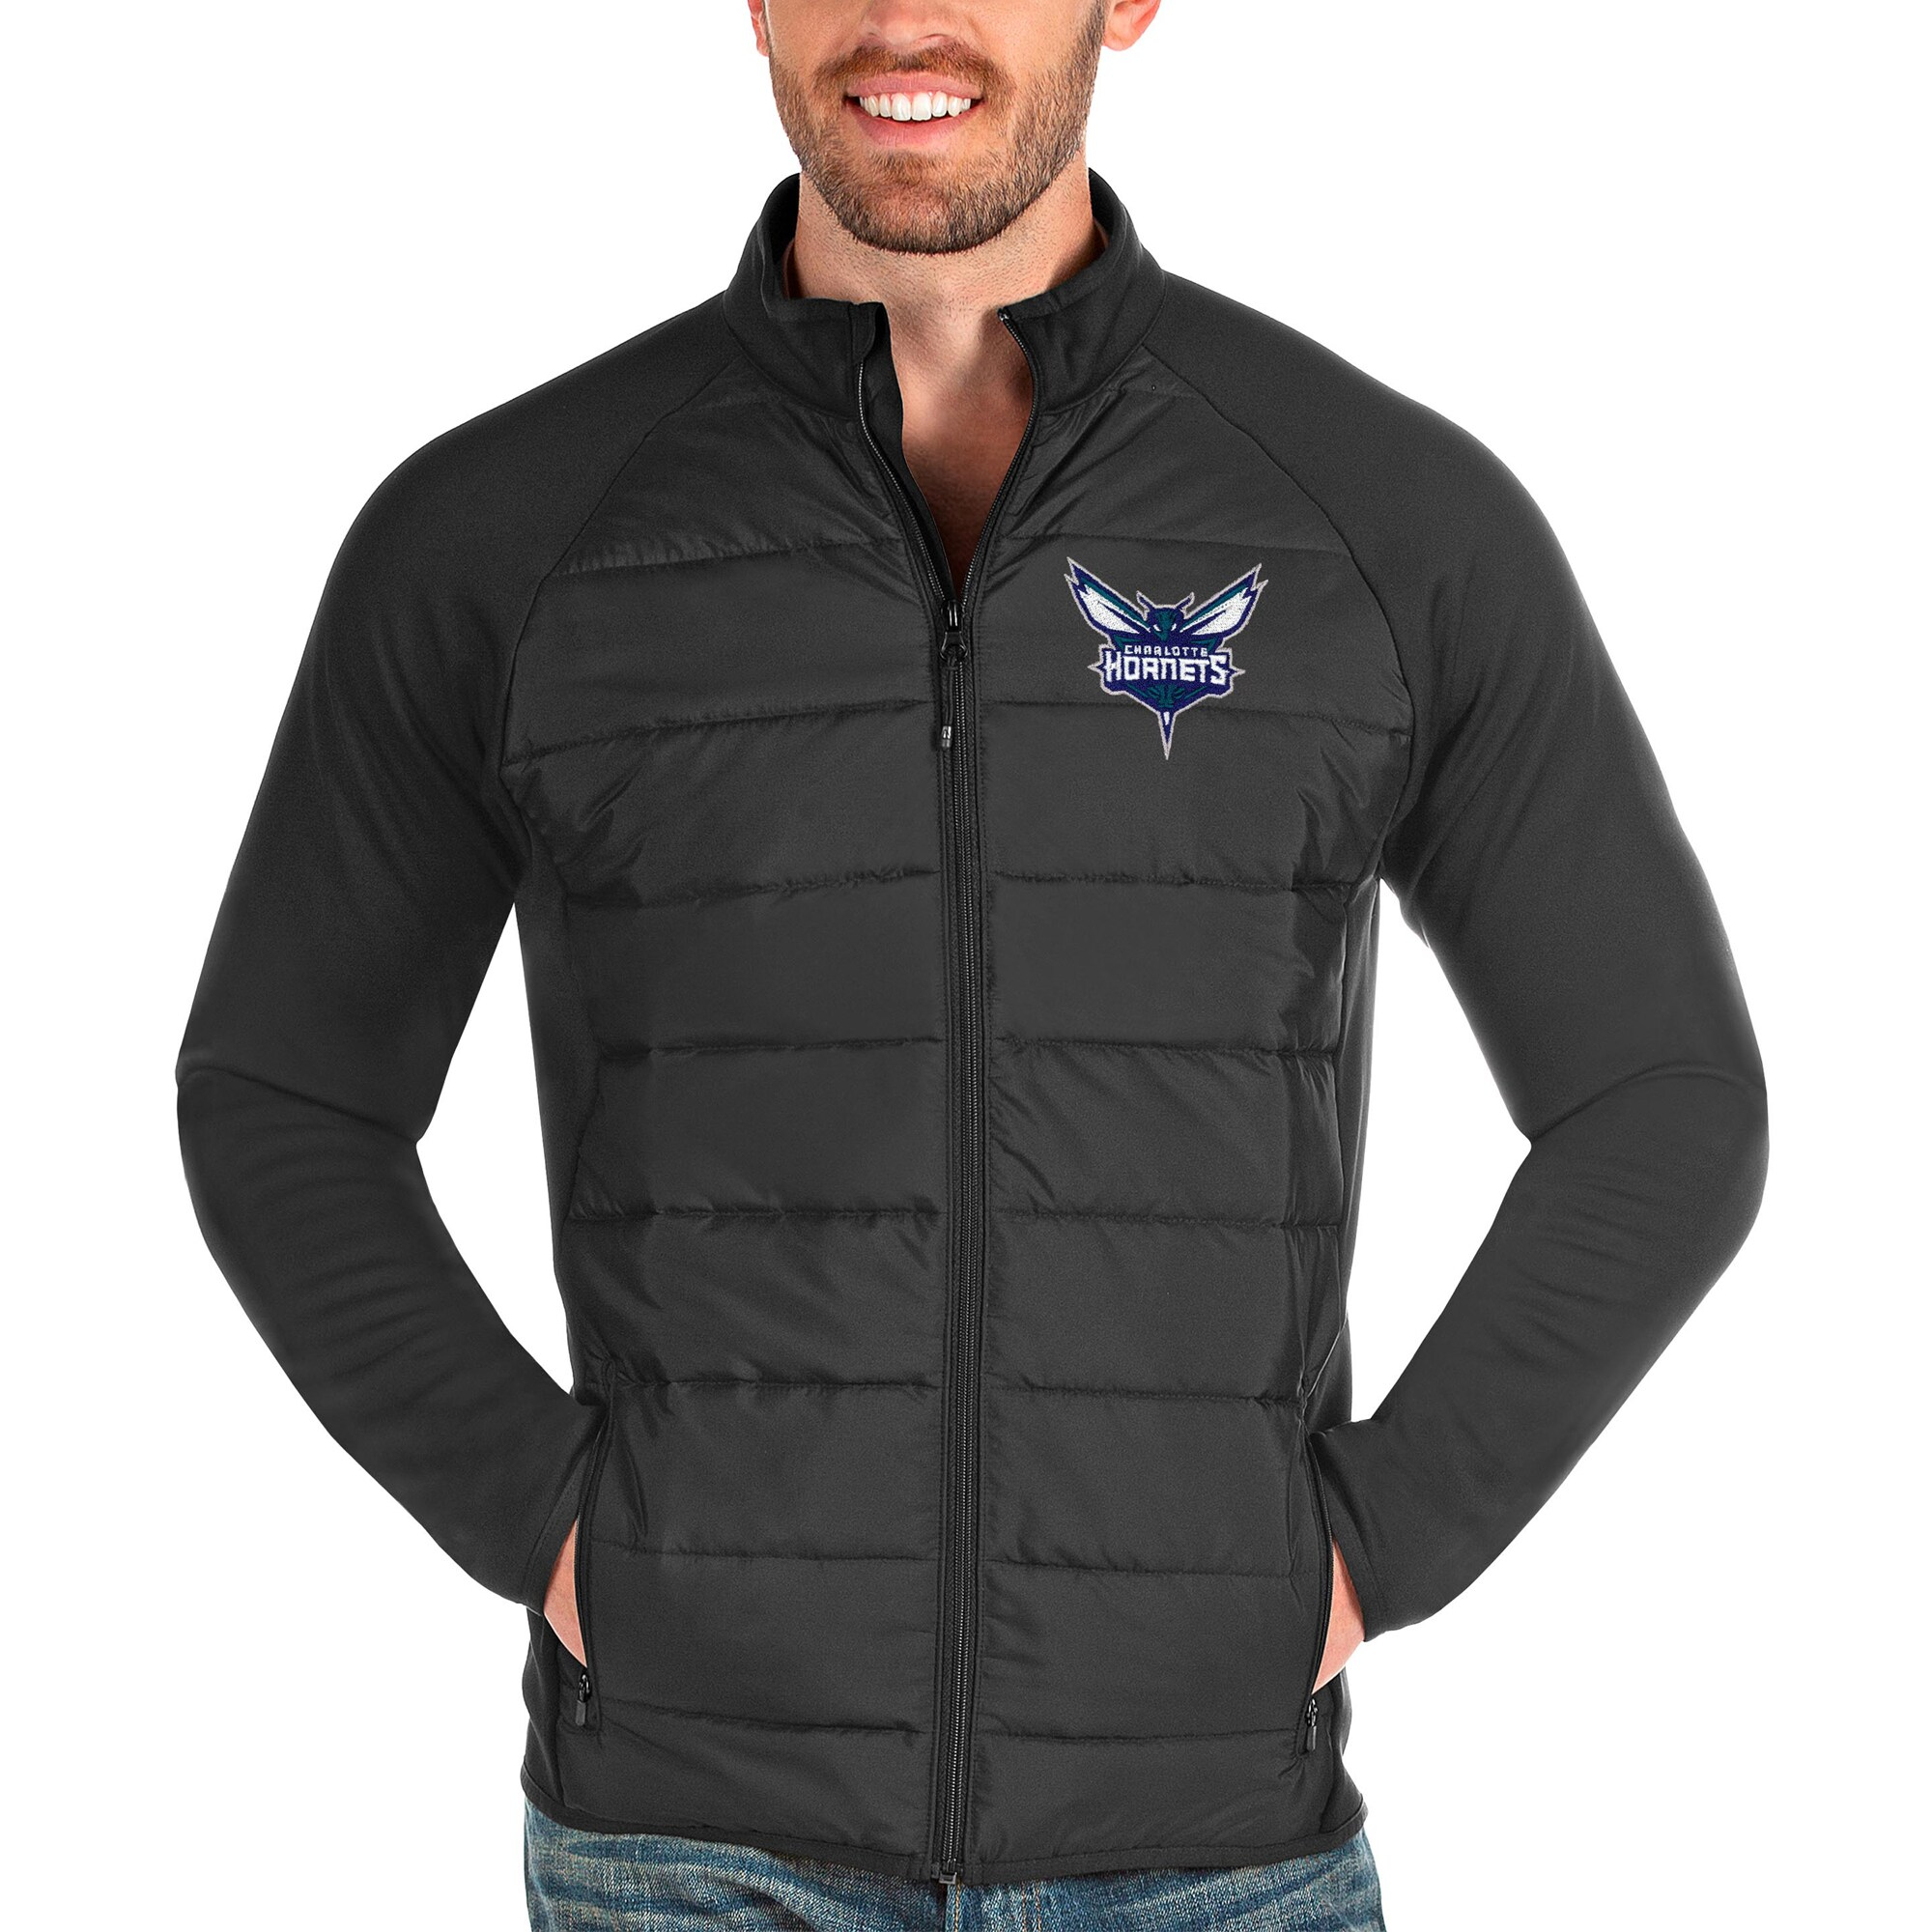 Charlotte Hornets Antigua Altitude Full-Zip Jacket - Charcoal